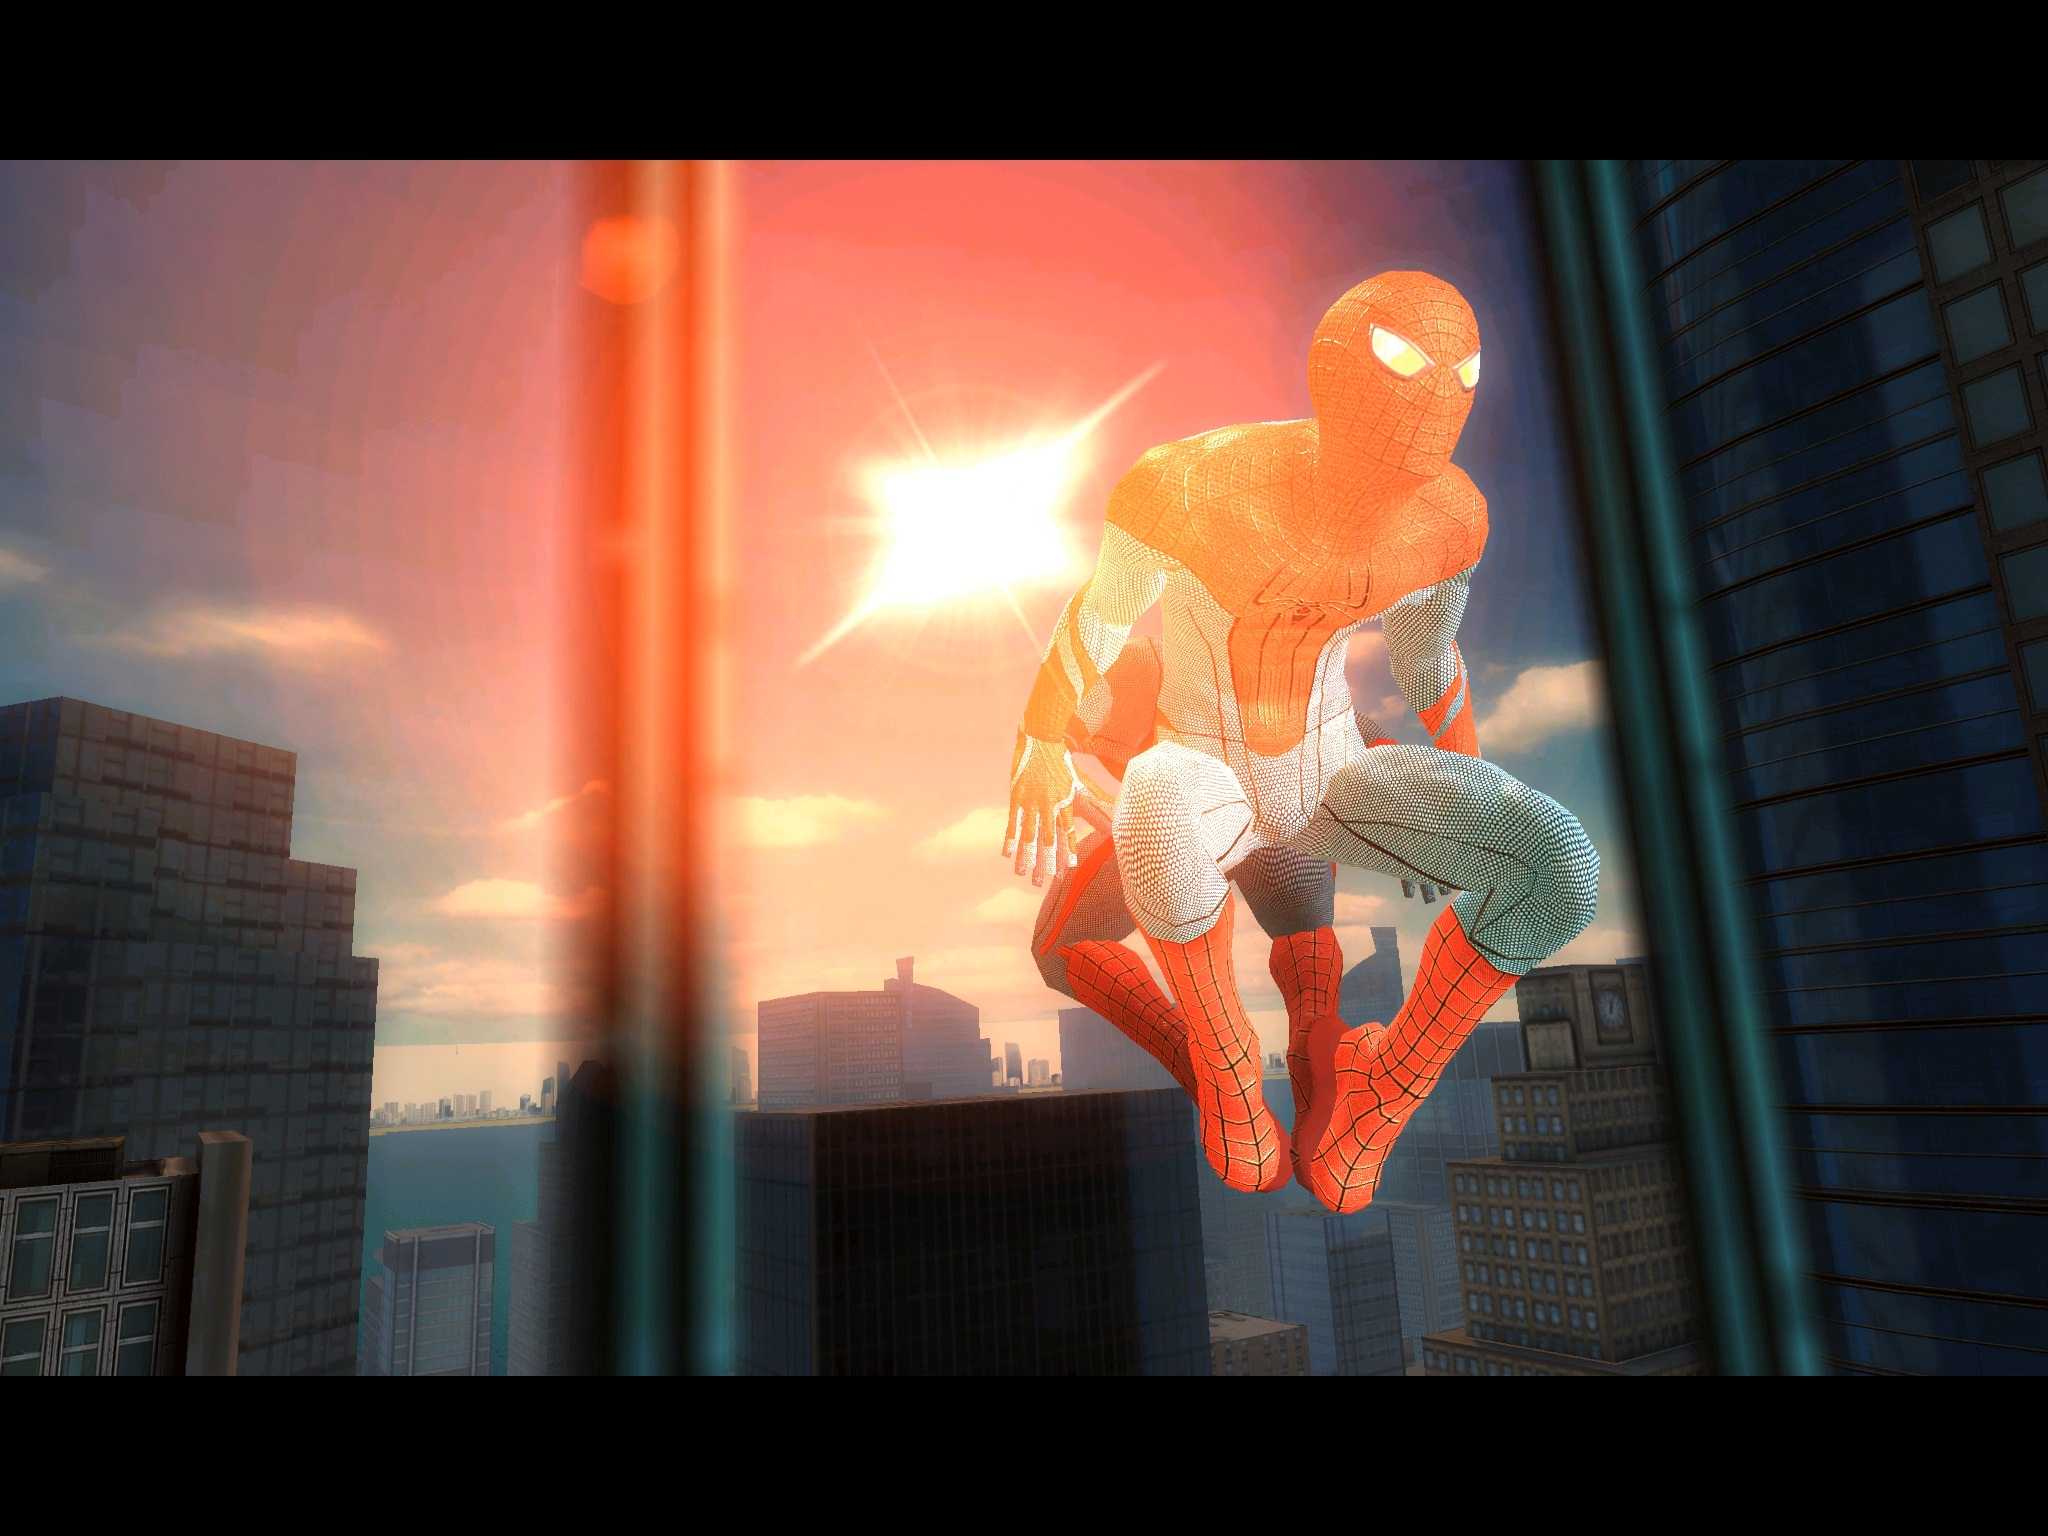 E3 2012: Hands on with The Amazing Spider-Man for iOS and Android